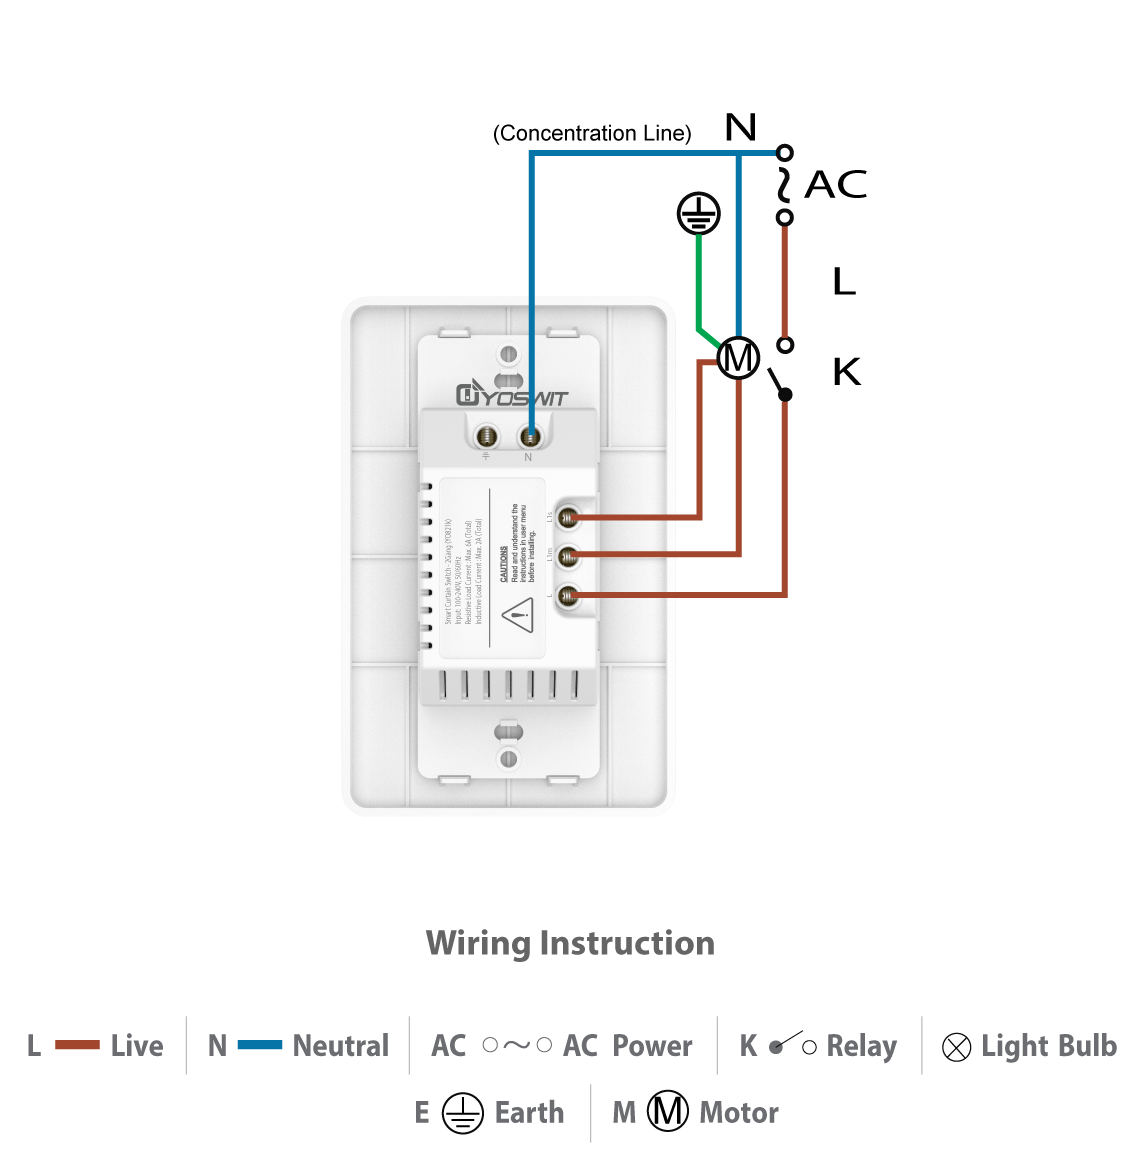 Smart Curtain Switch Socket 120 1 Layer Home 2 Gang Receptacle Box Wiring Diagram Failure To Connect The Ground Wire Will Result In An Unsafe Installation That Could Lead Personal Injury